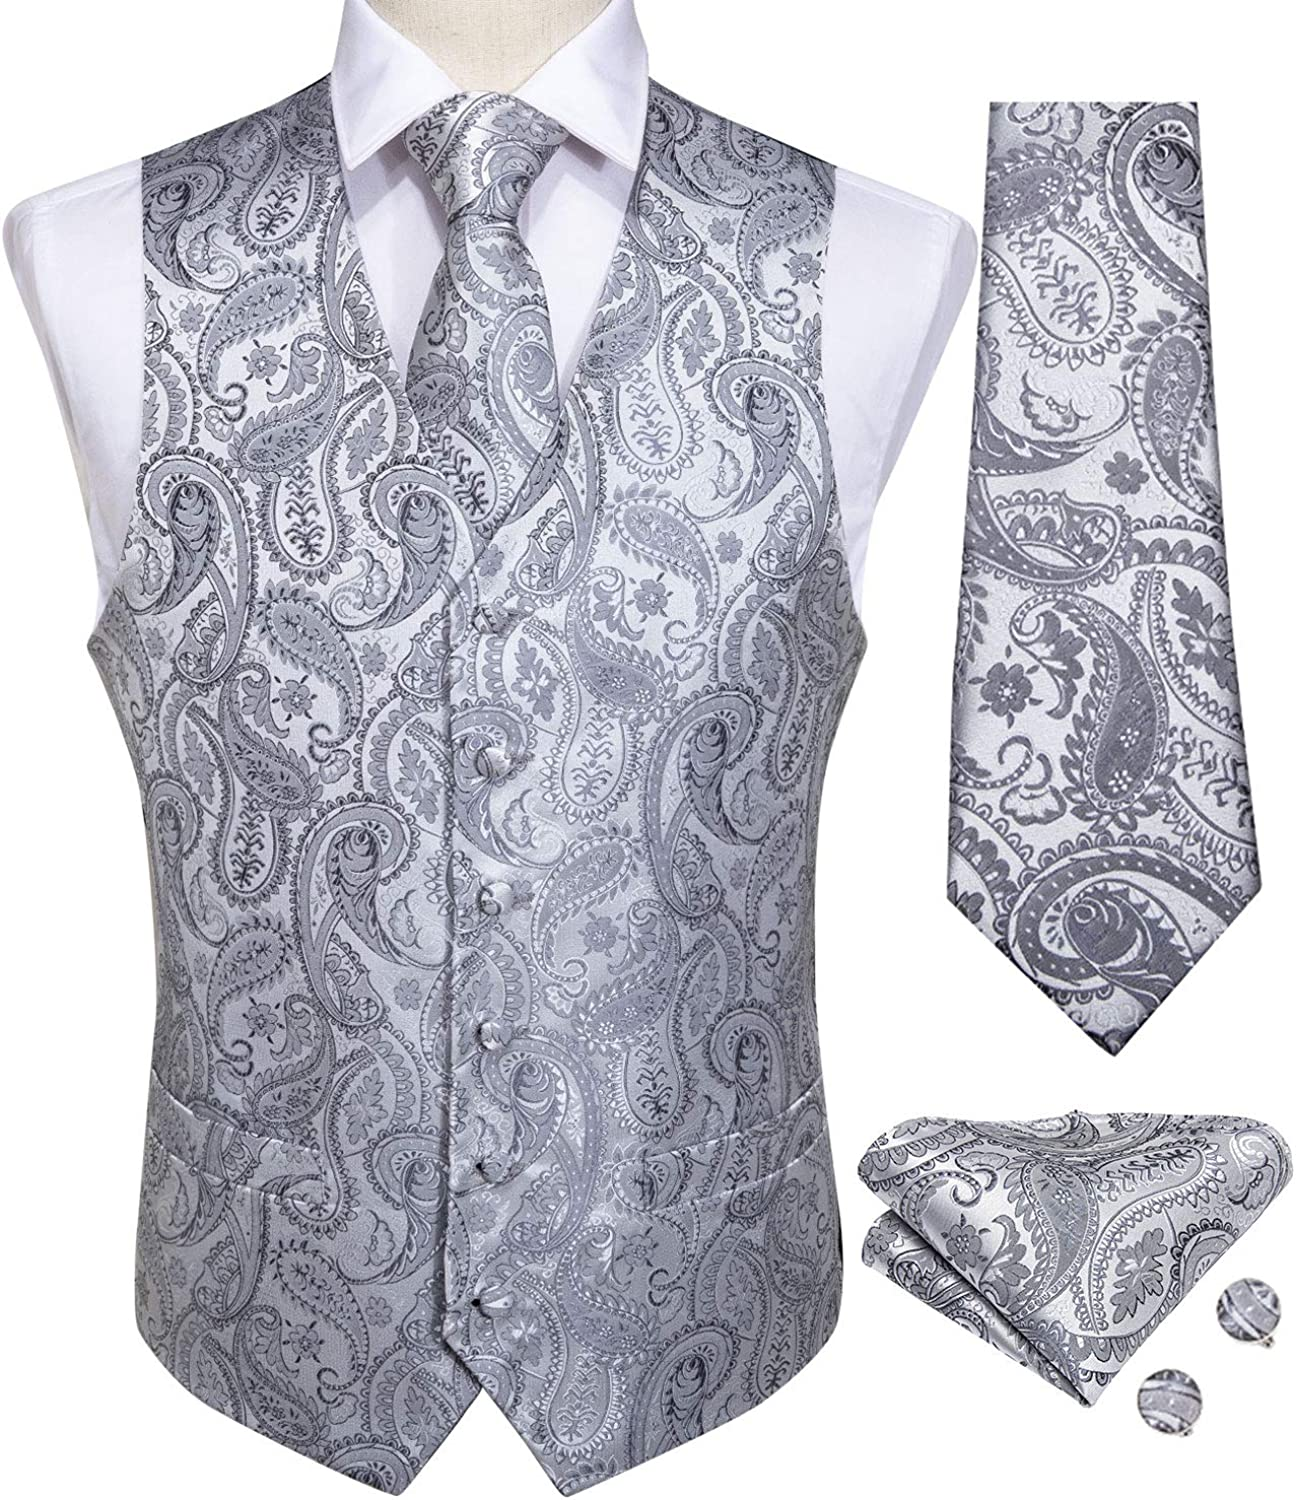 Mens Wedding Paisley Suit Vest, Waistcoat Necktie and Pocket Square Cufflinks Big and Tall